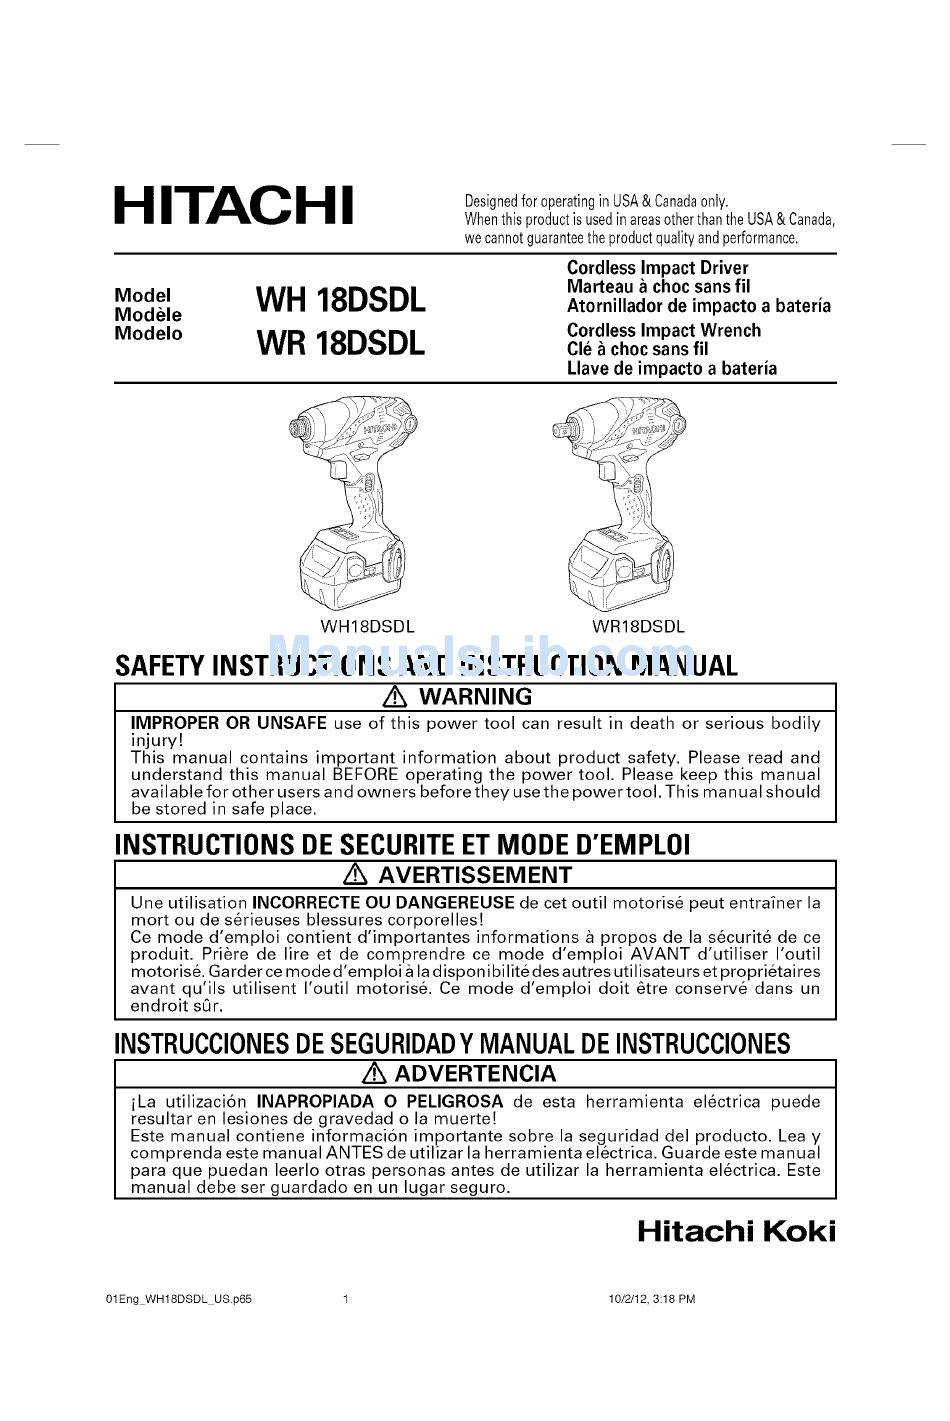 HITACHI WH 18DSDL SAFETY INSTRUCTIONS AND INSTRUCTION